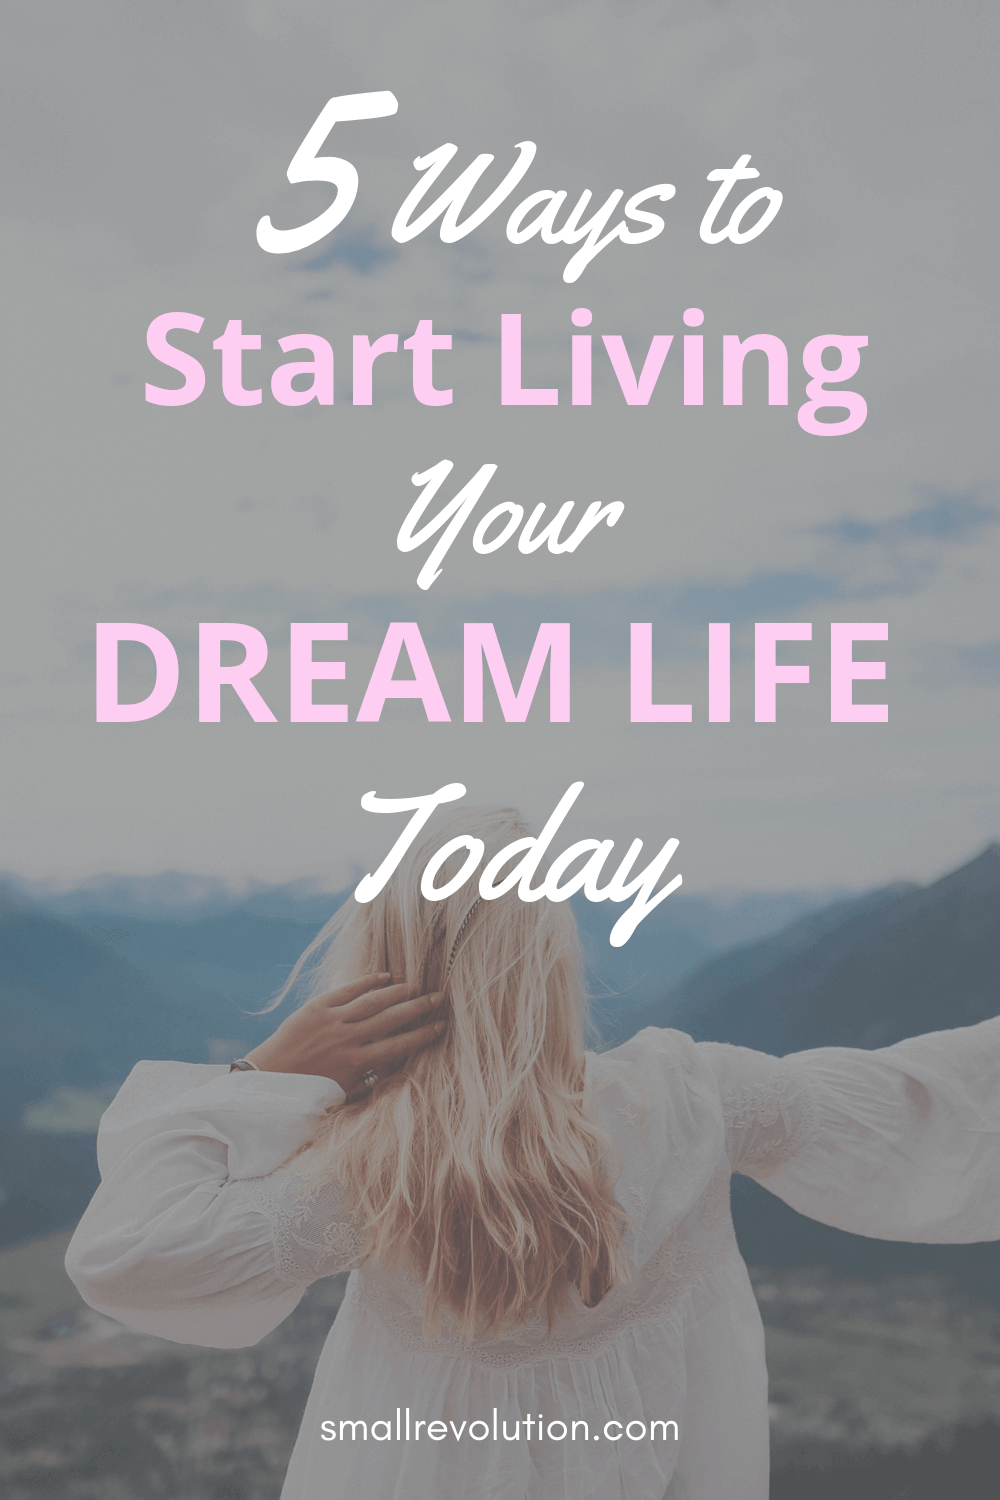 How to start living your dream life today